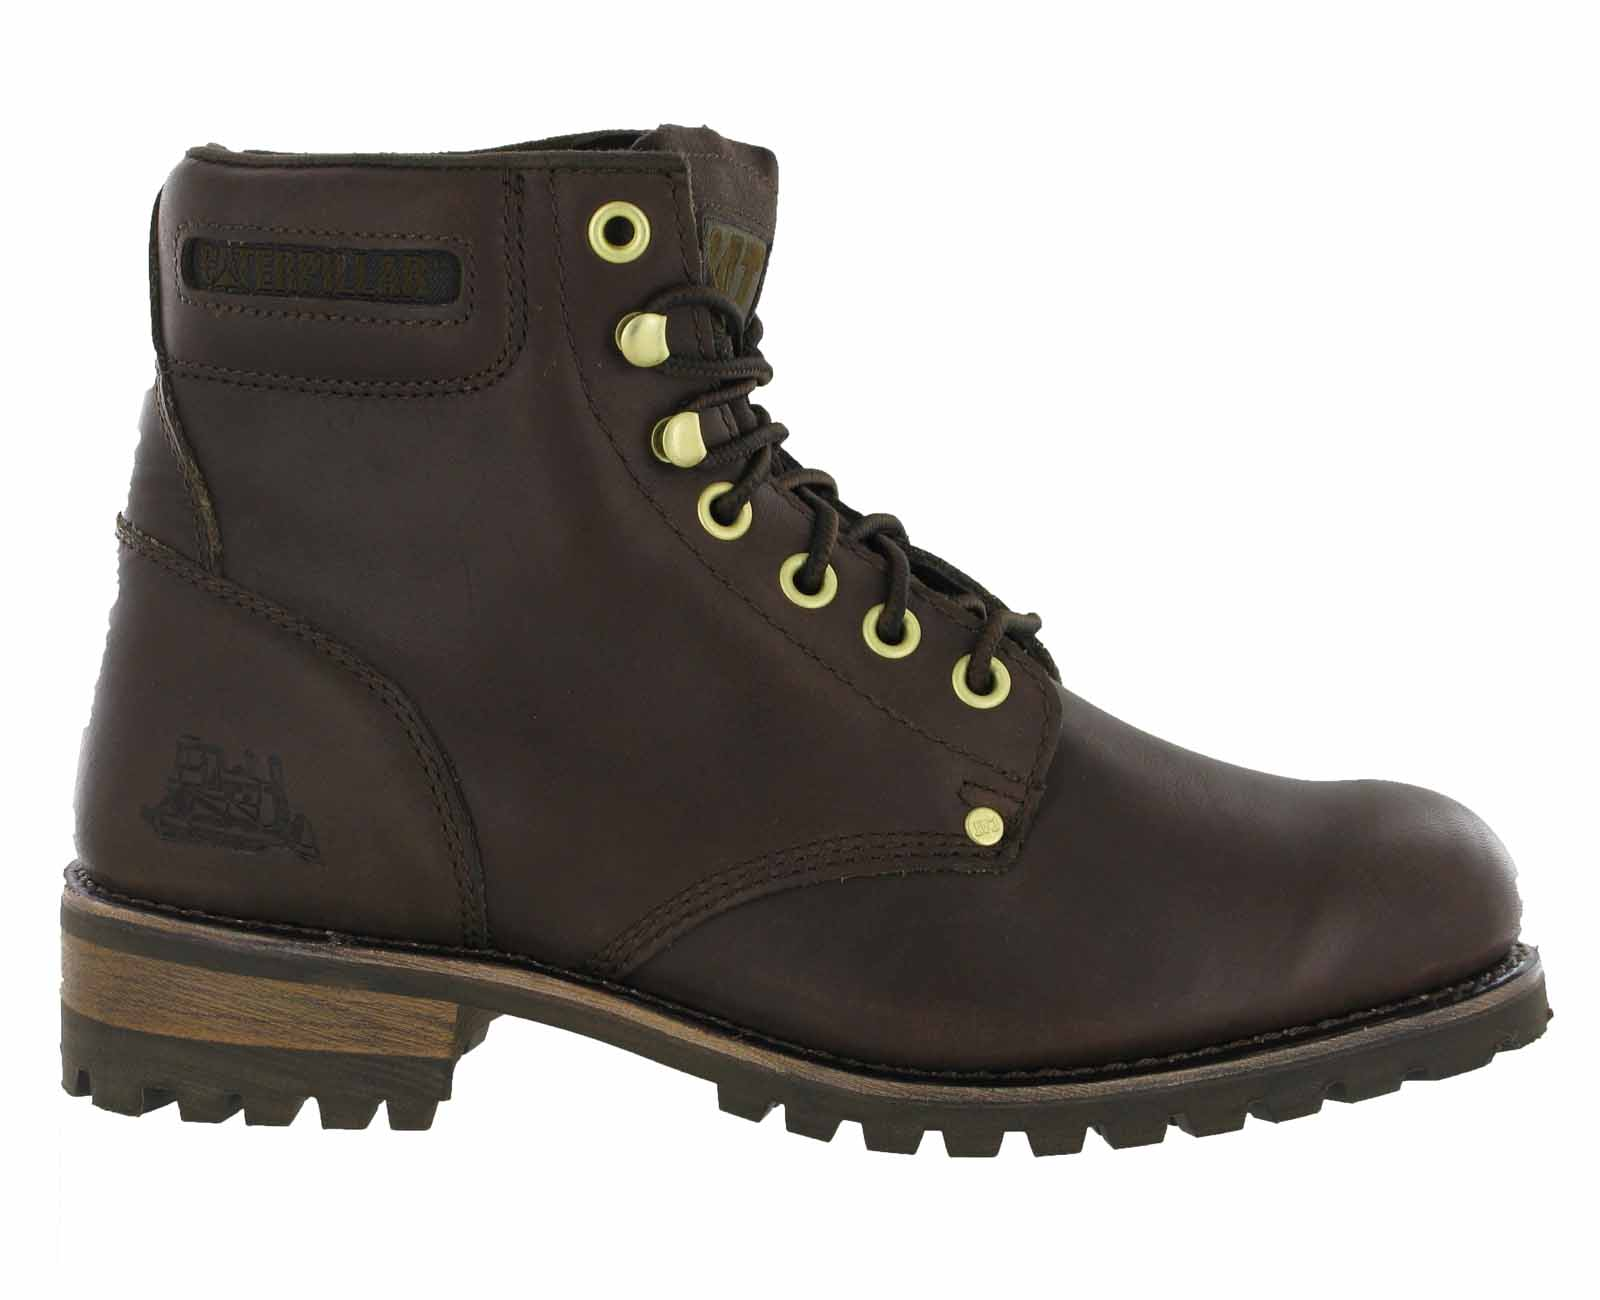 mens cat caterpillar sequoia non safety leather fashion